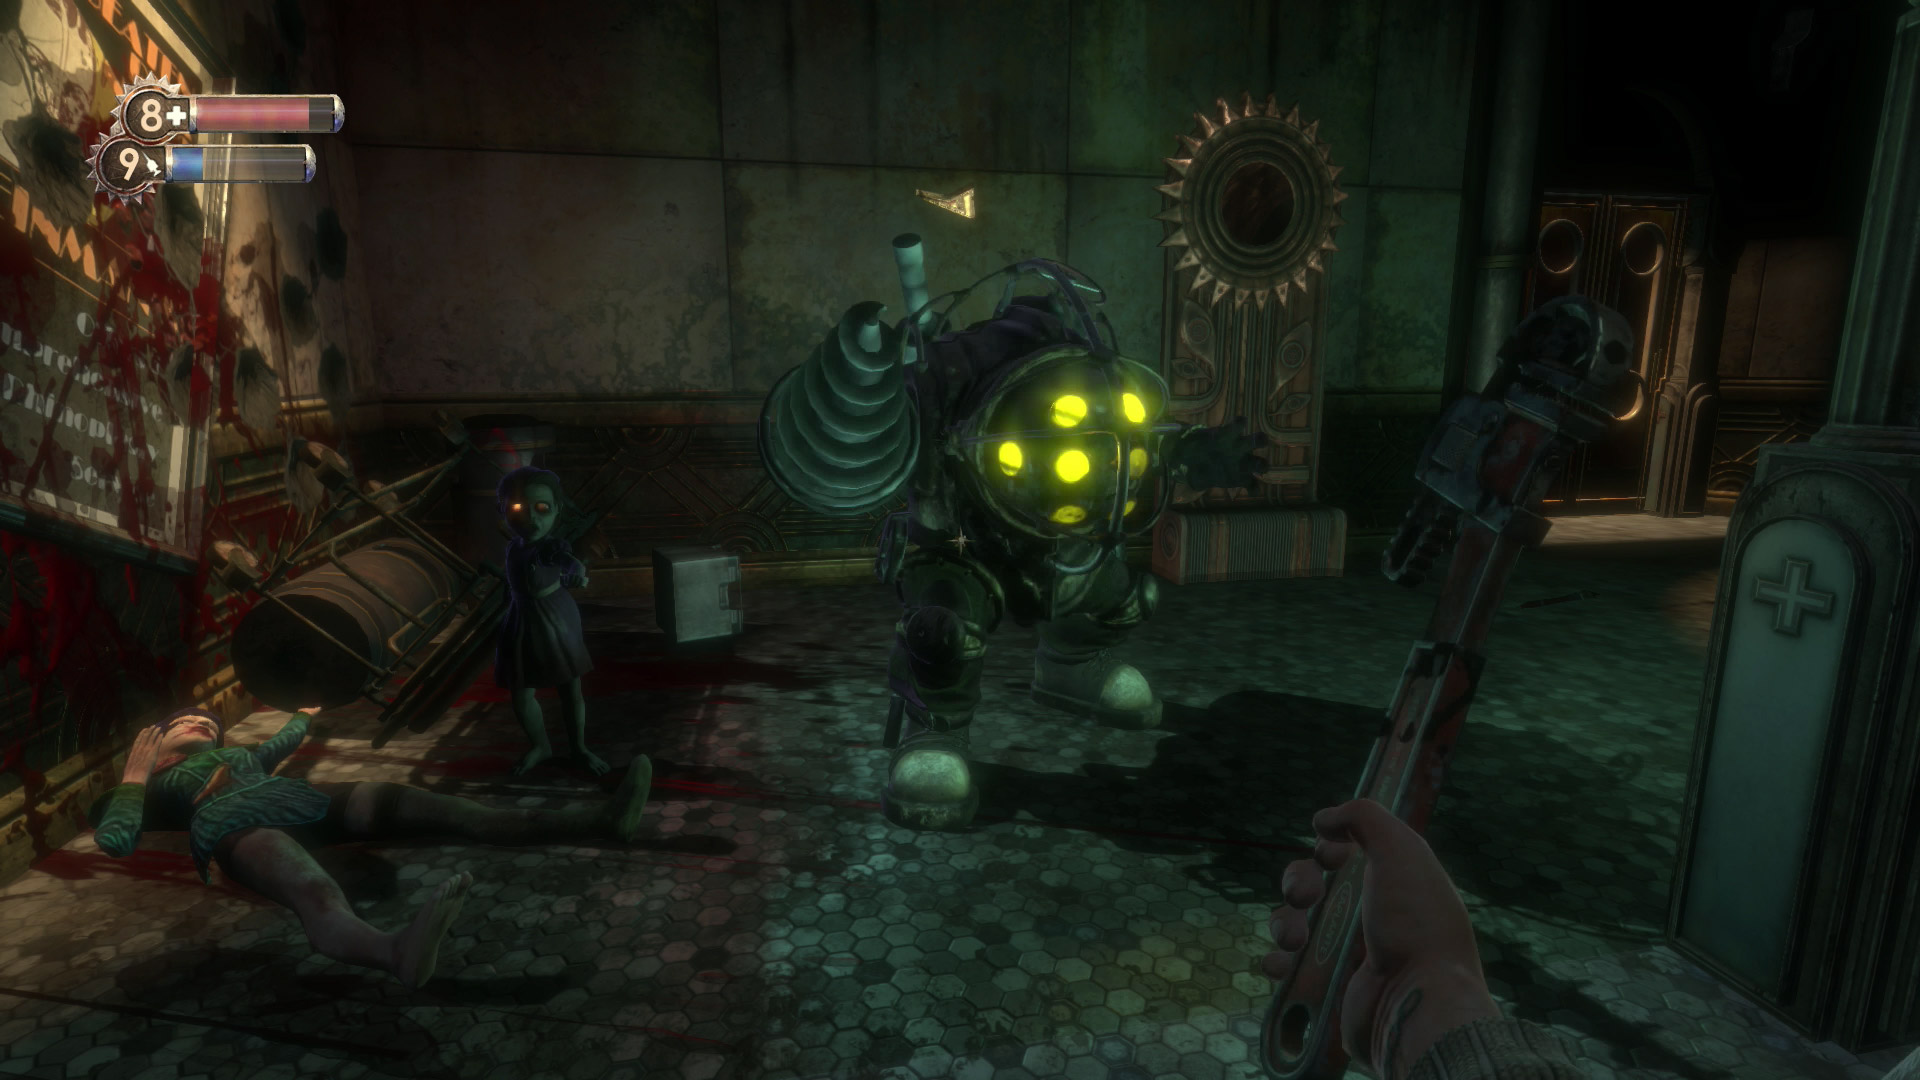 Bioshock HD - Big Daddy